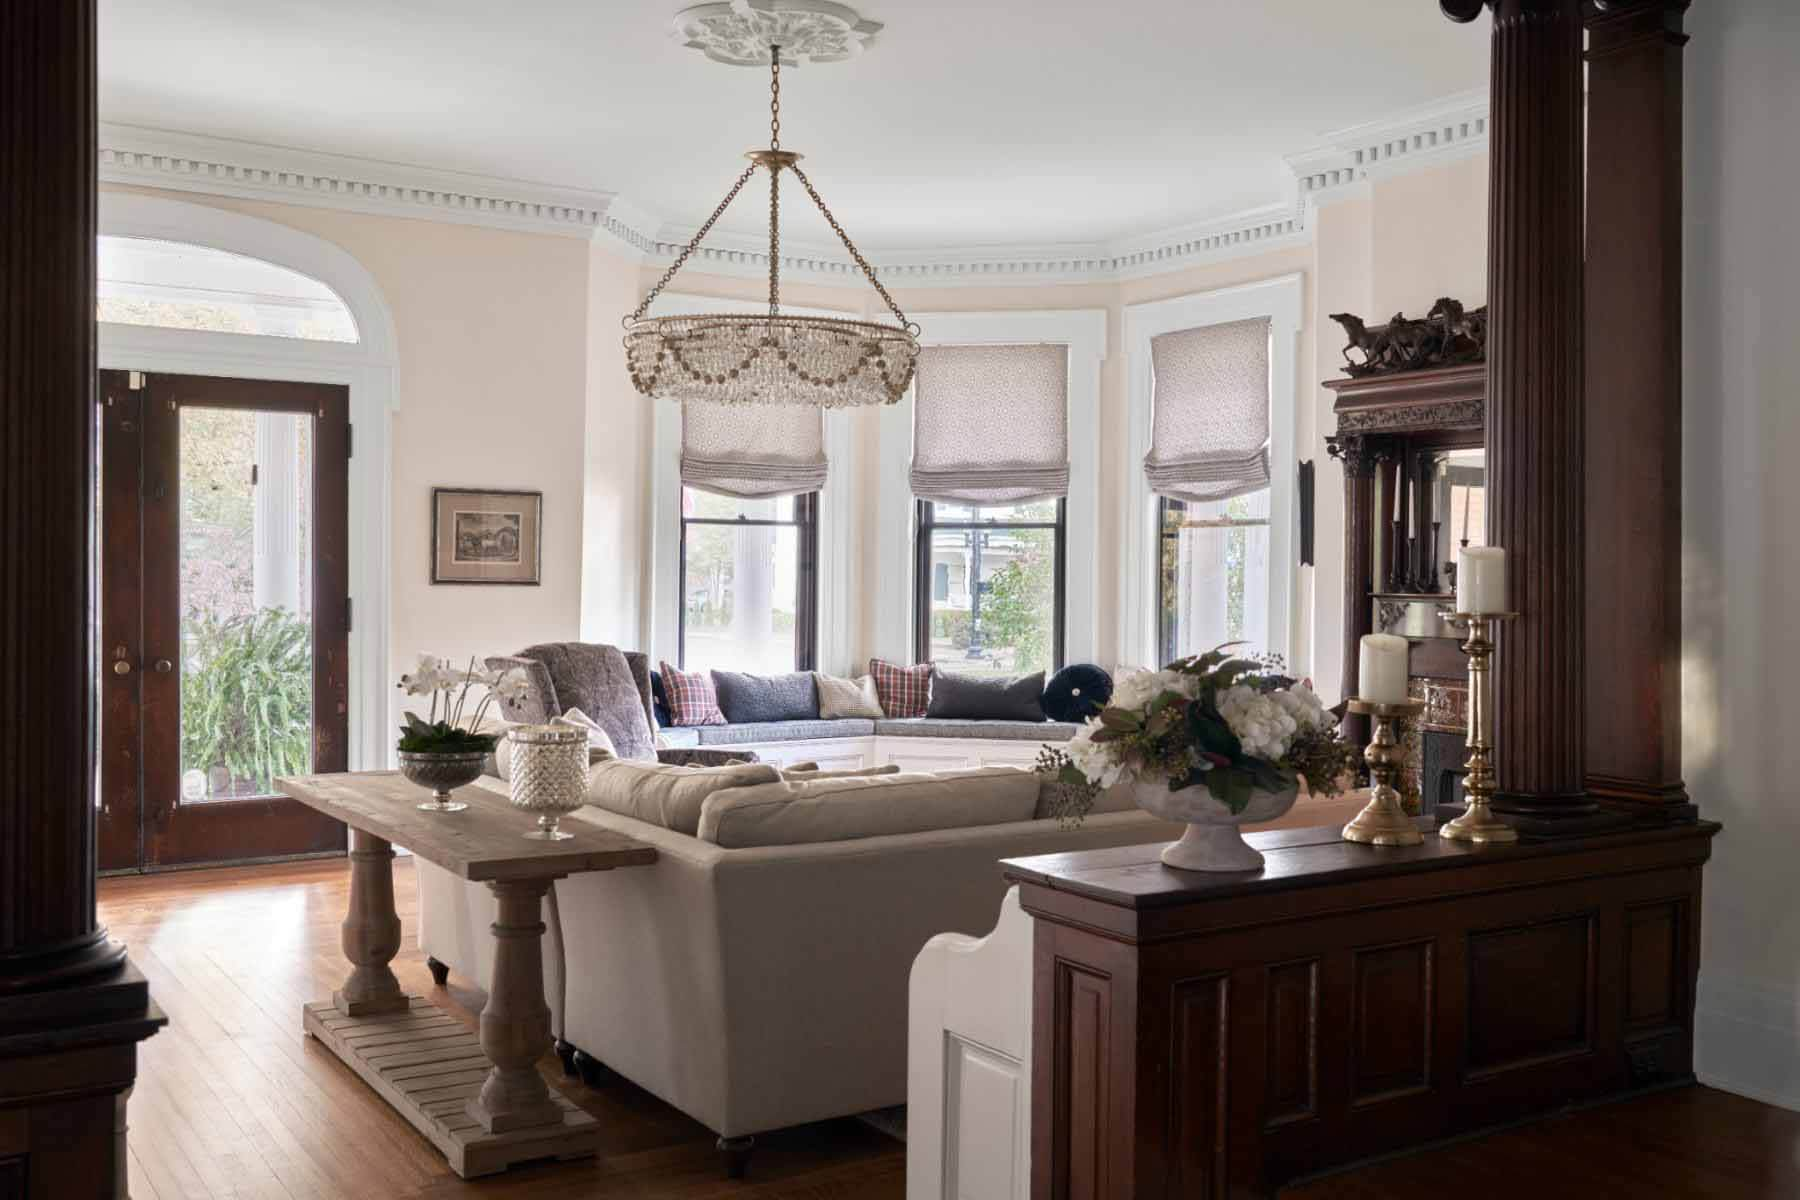 Front room at Victorian home with interior design by Marcelle Guilbeau